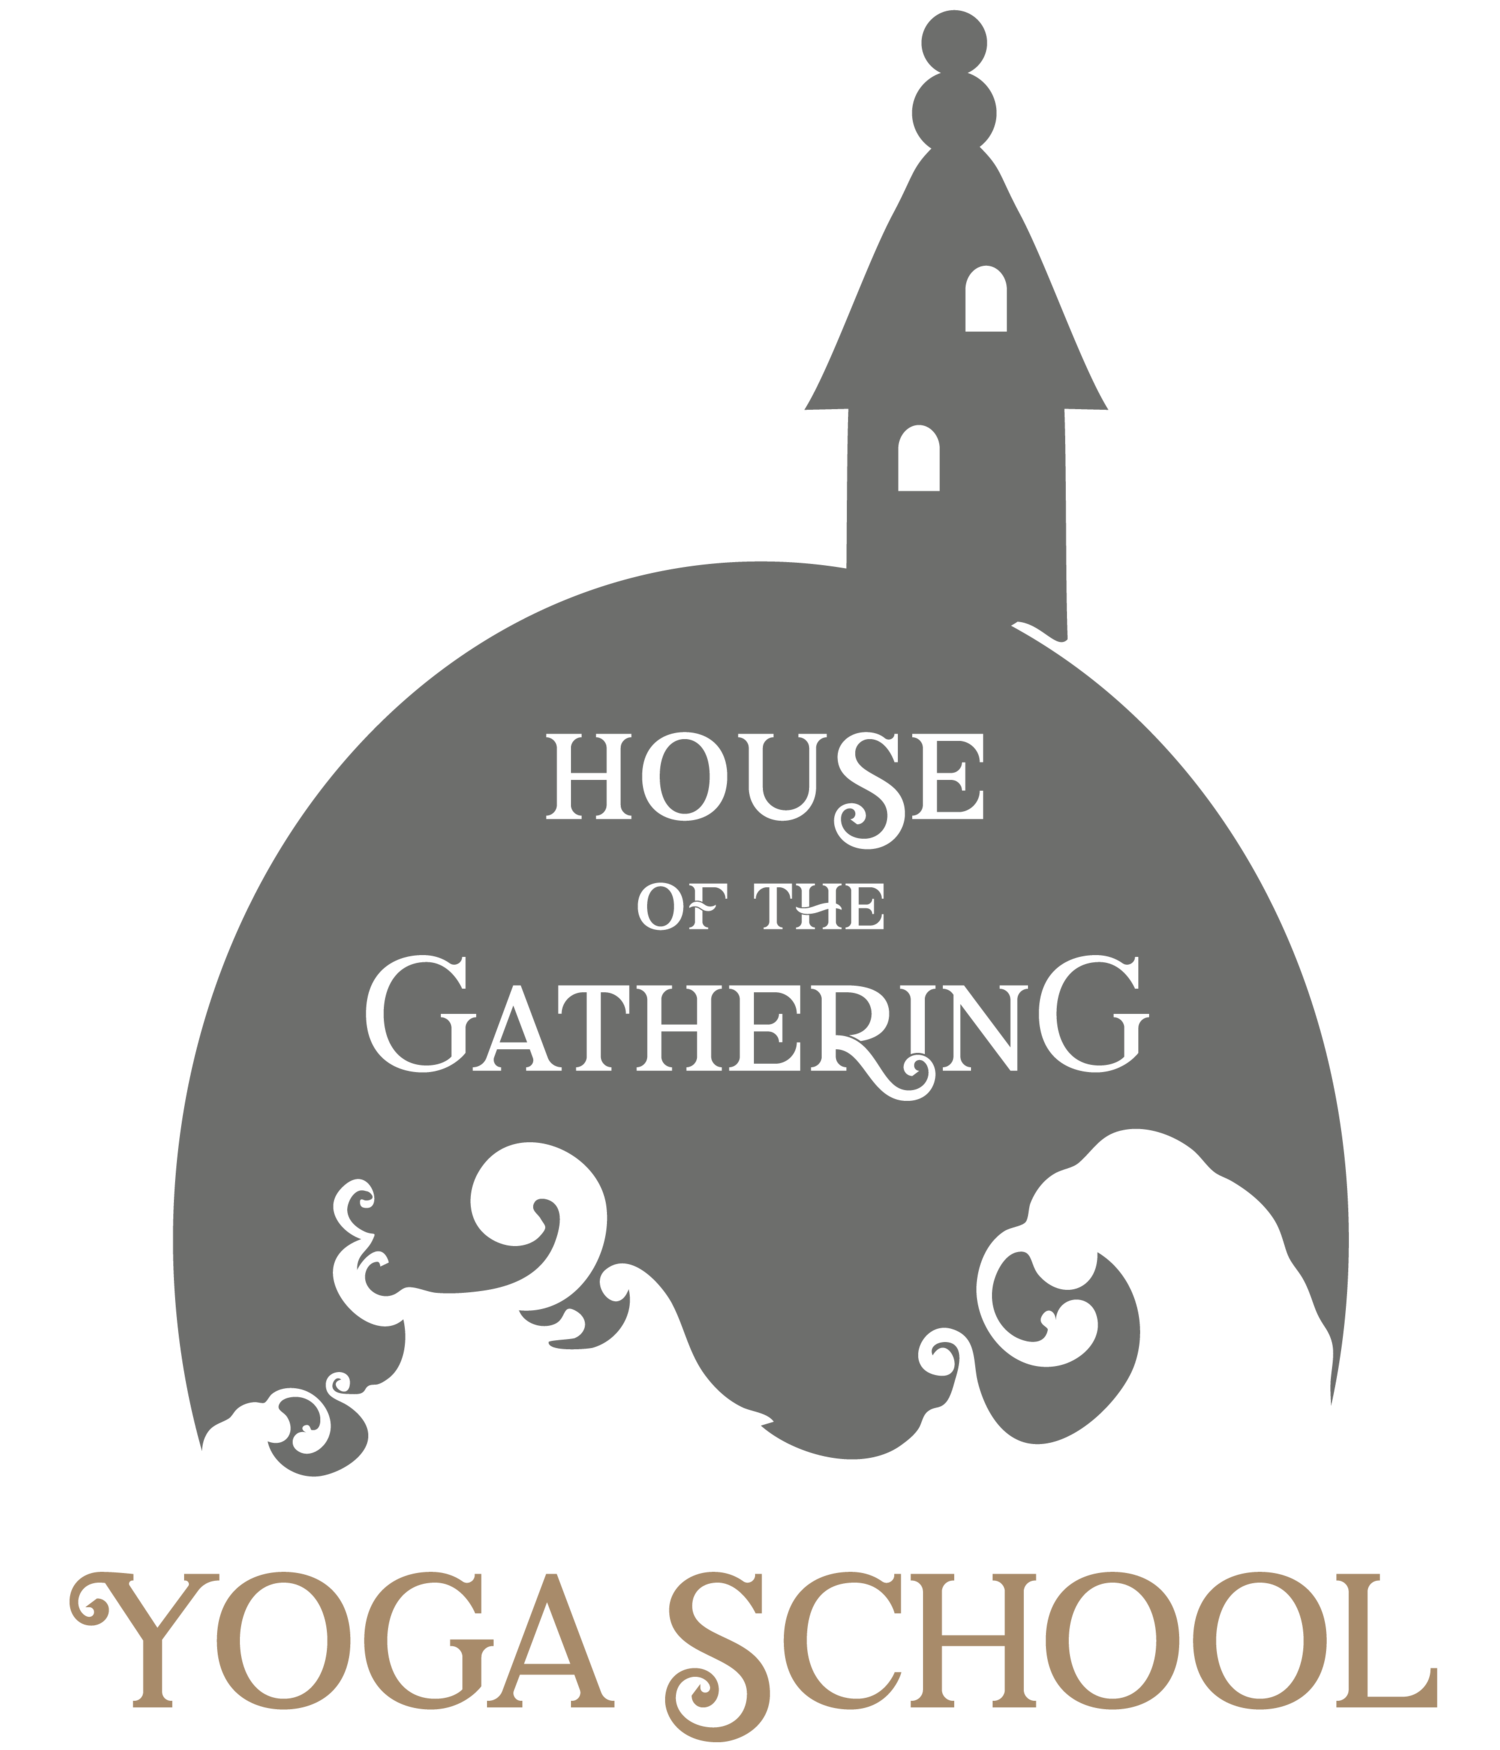 House of the Gathering Yoga School